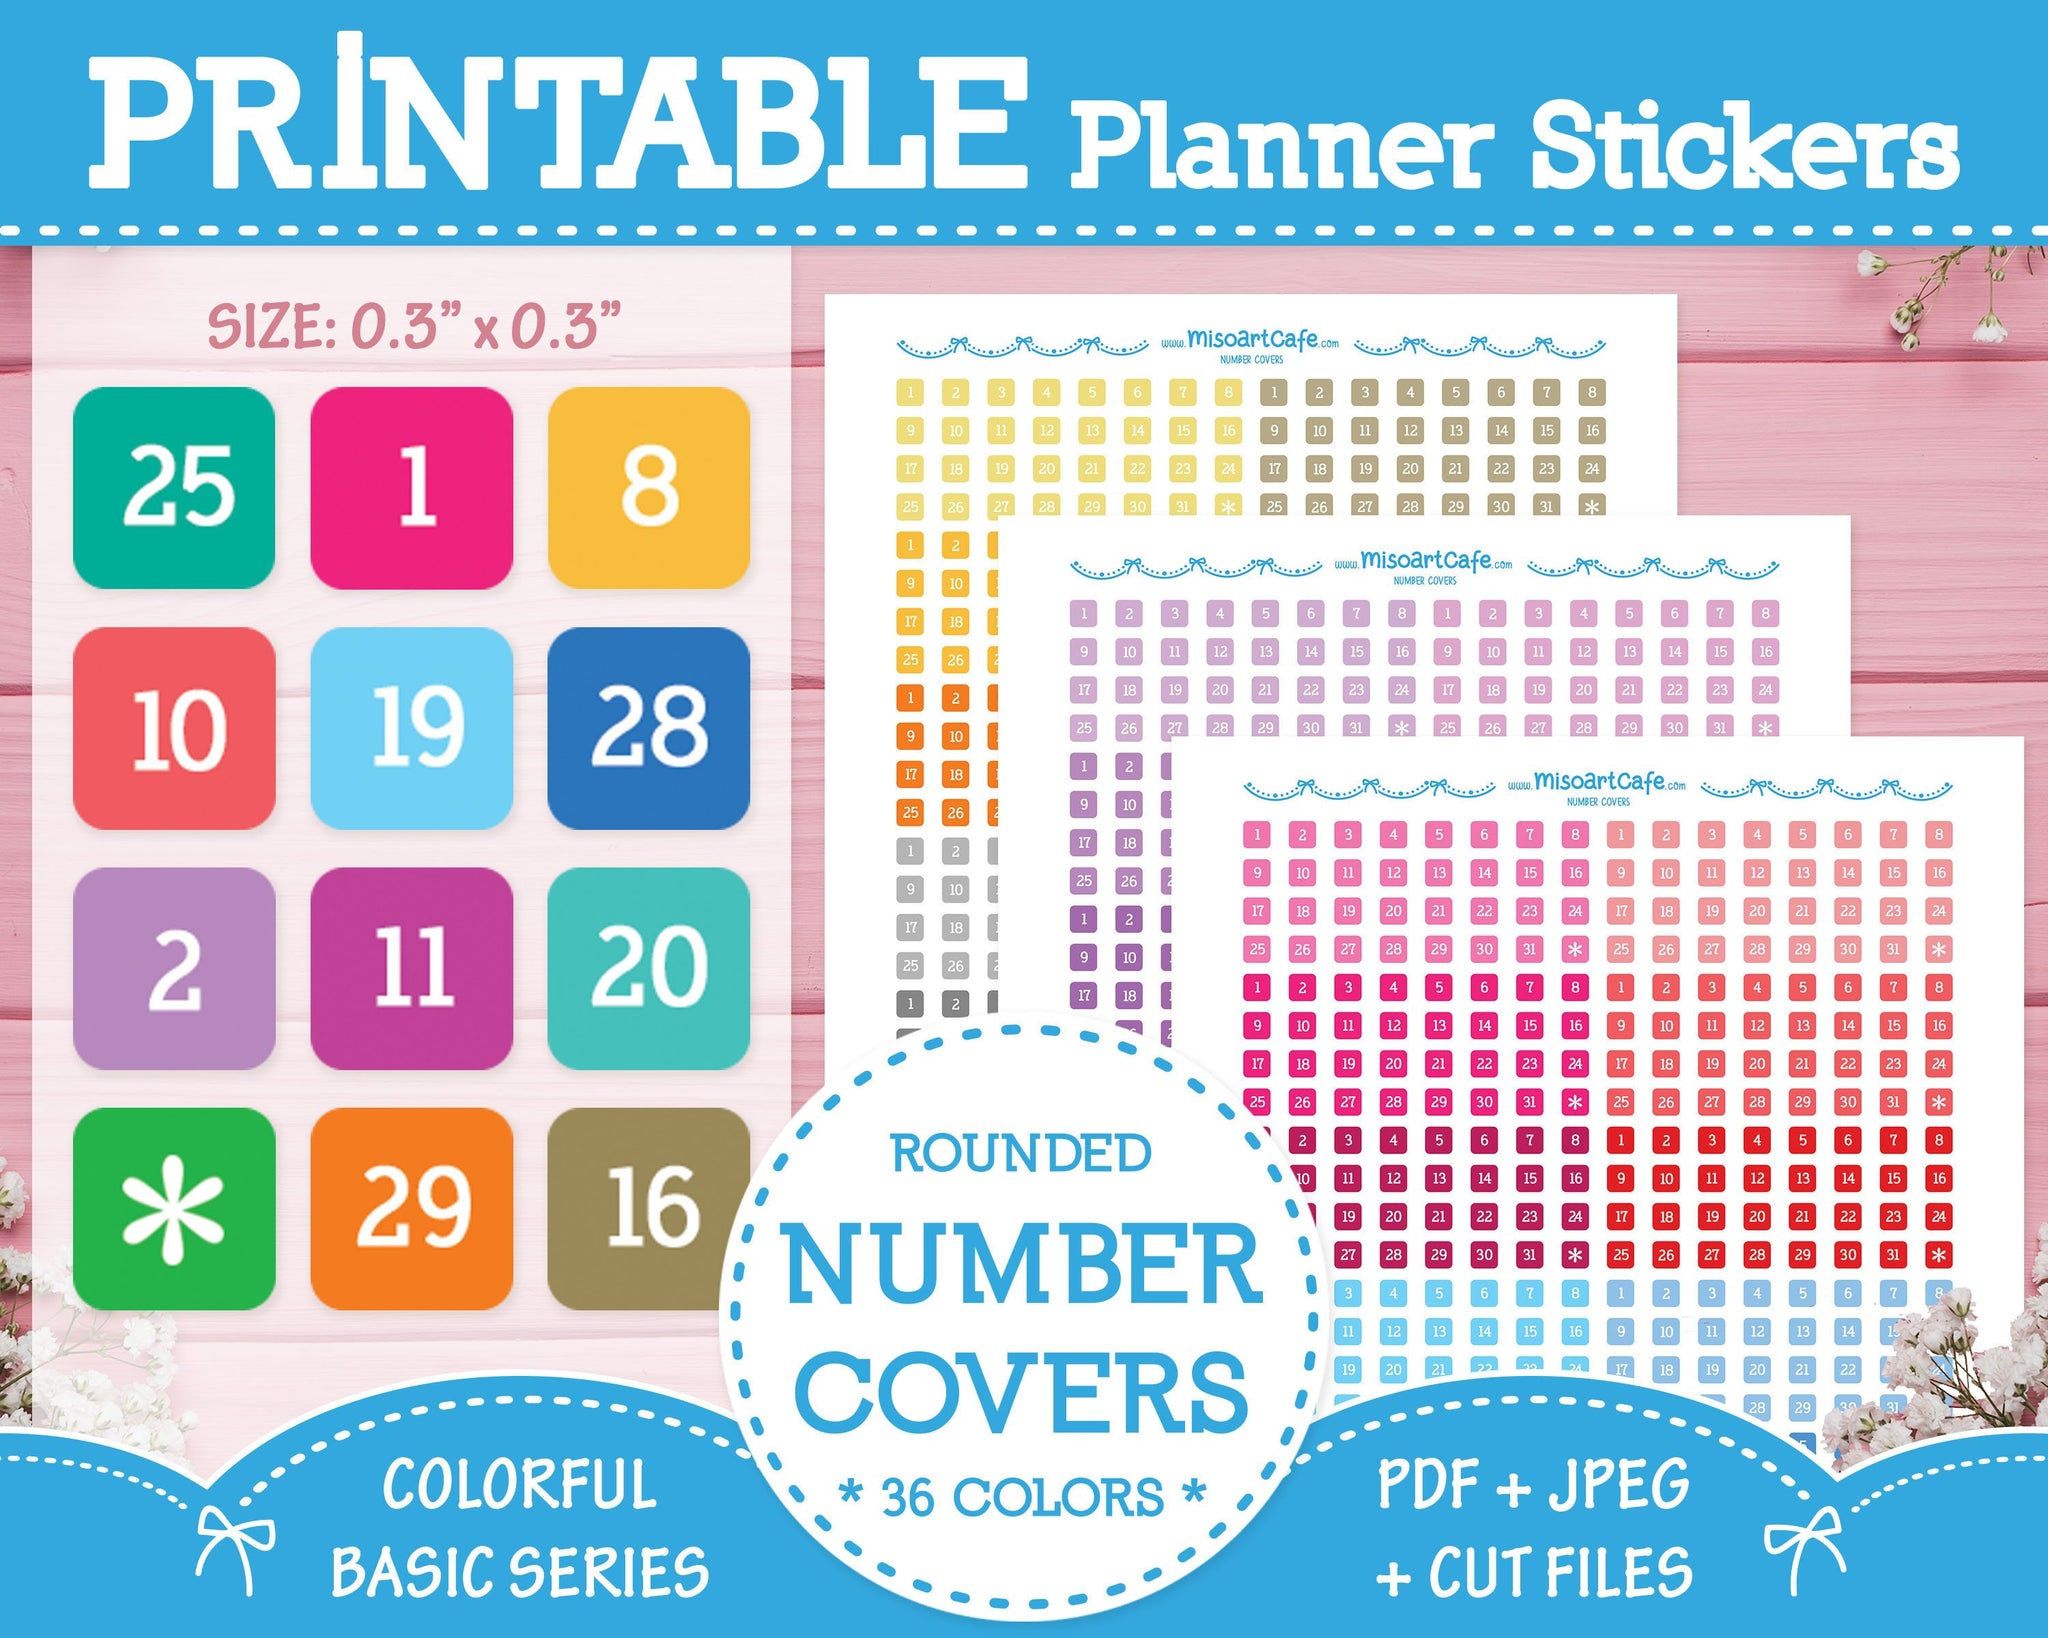 Printable Number Covers - Colorful Basic Planner Stickers - Miso Art Cafe